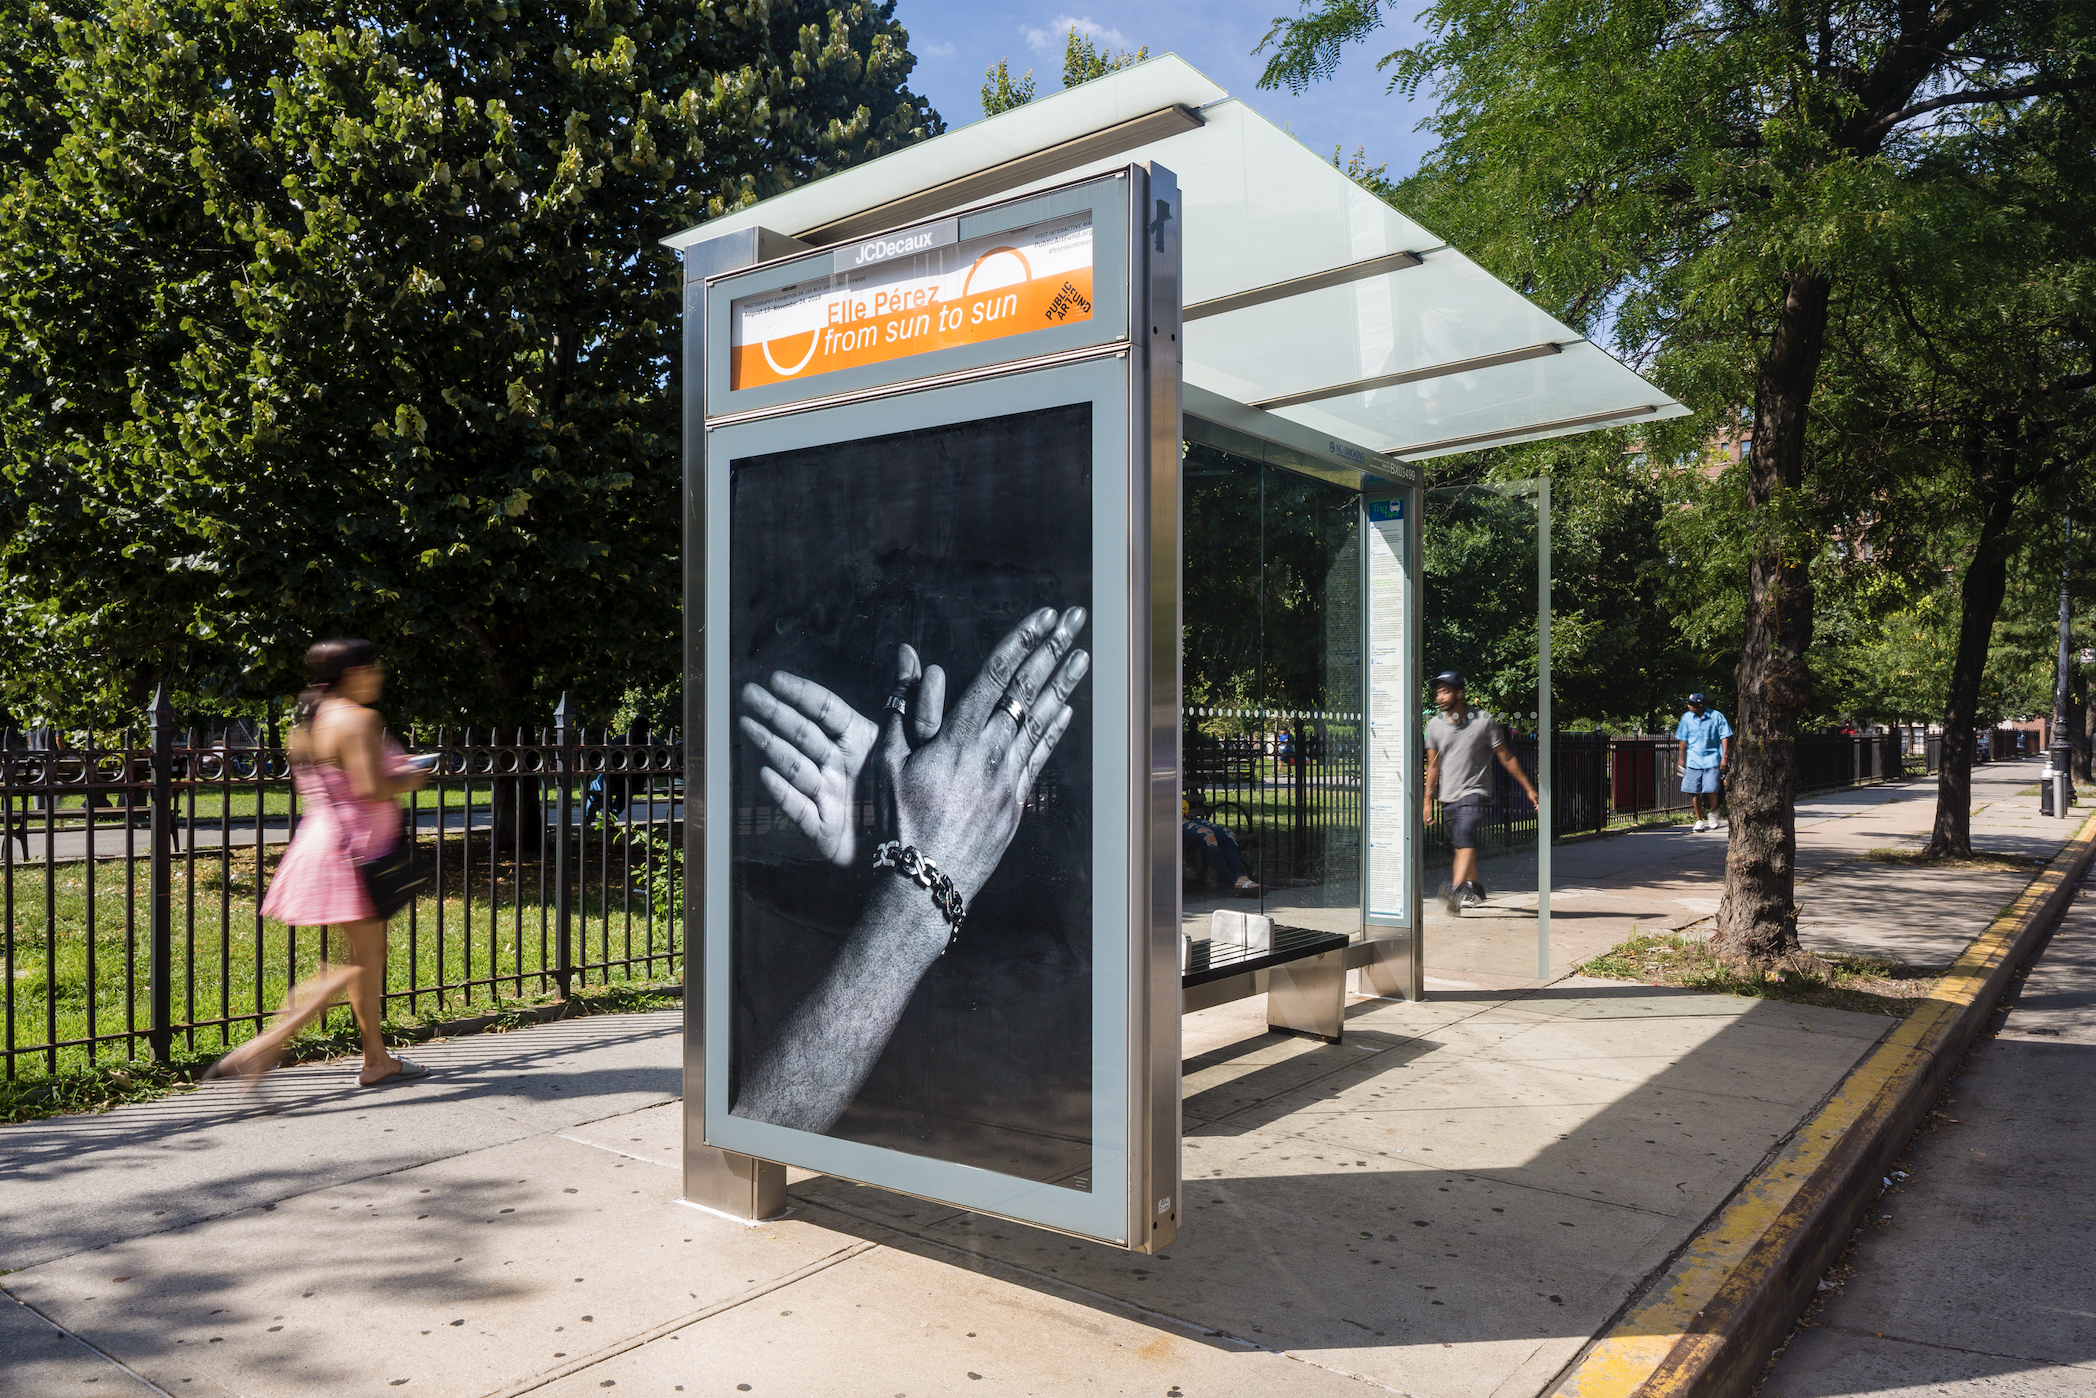 A bus shelter in the Bronx featuring an image of two hands shaking.